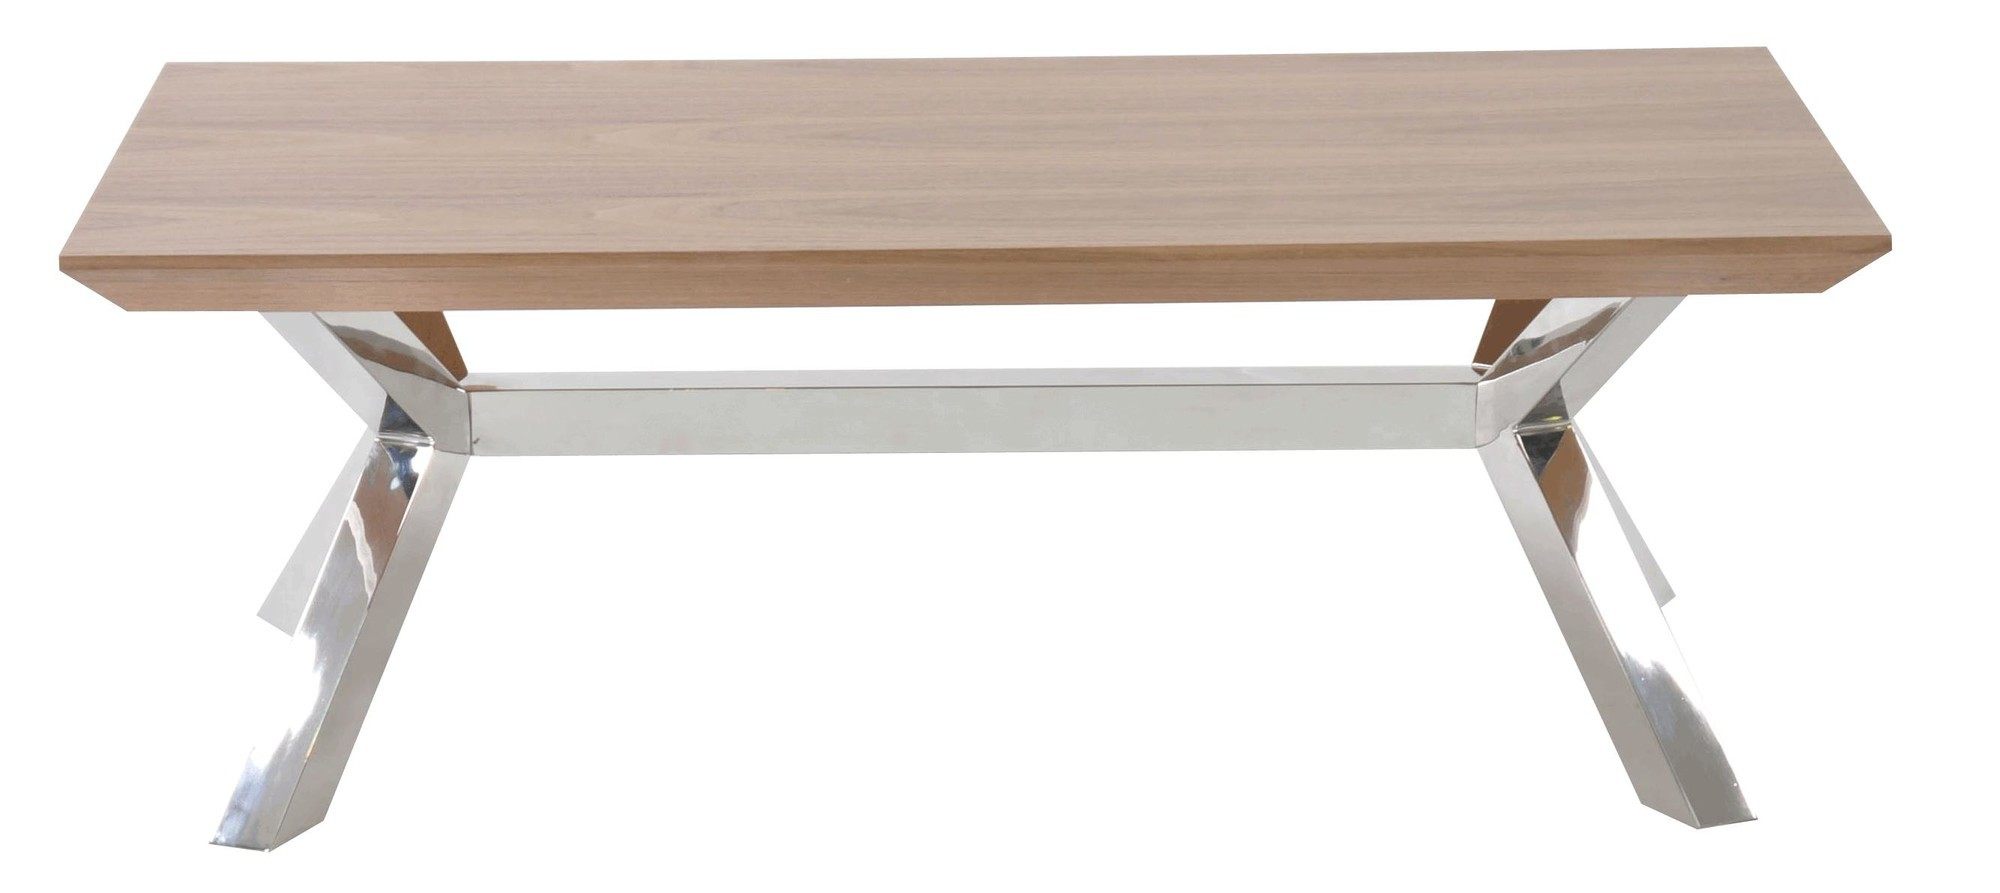 New nordic coffee table ebay for Coffee tables ebay australia